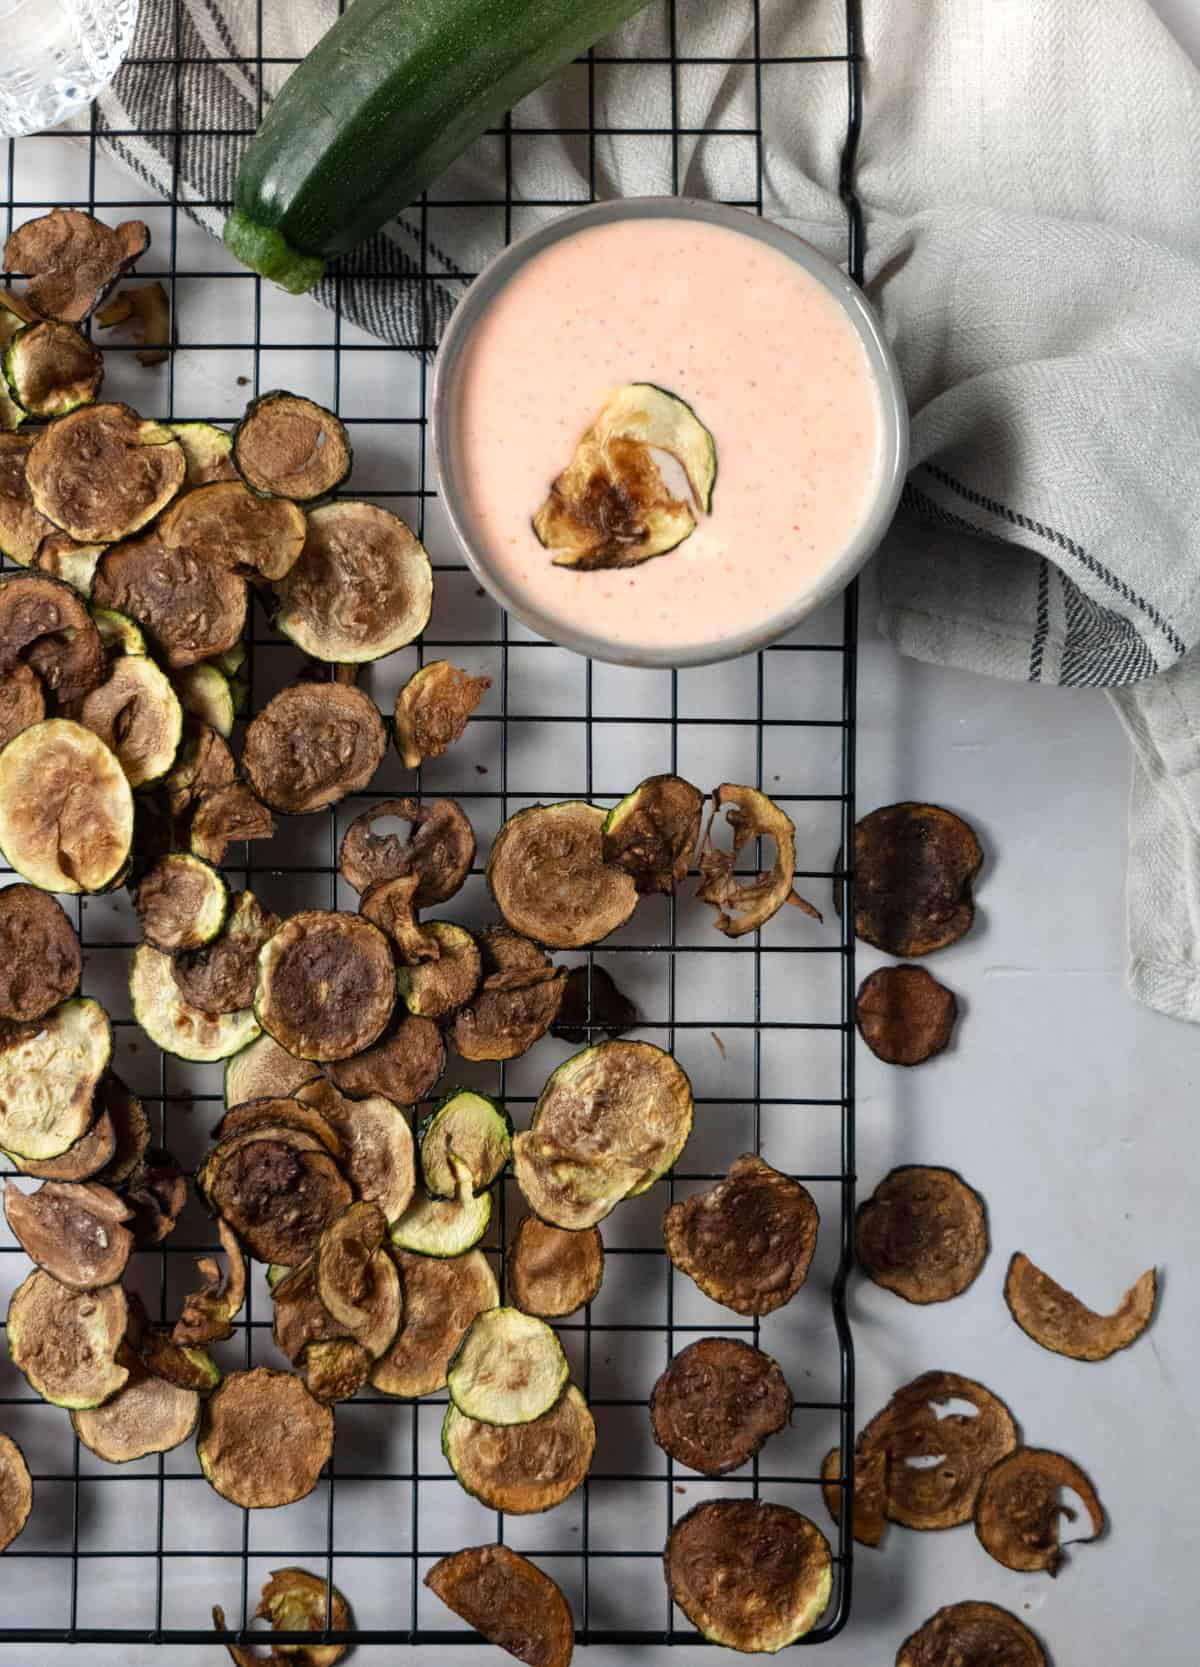 zucchini chips laid out on a wire rack with a pink dipping sauce on the side